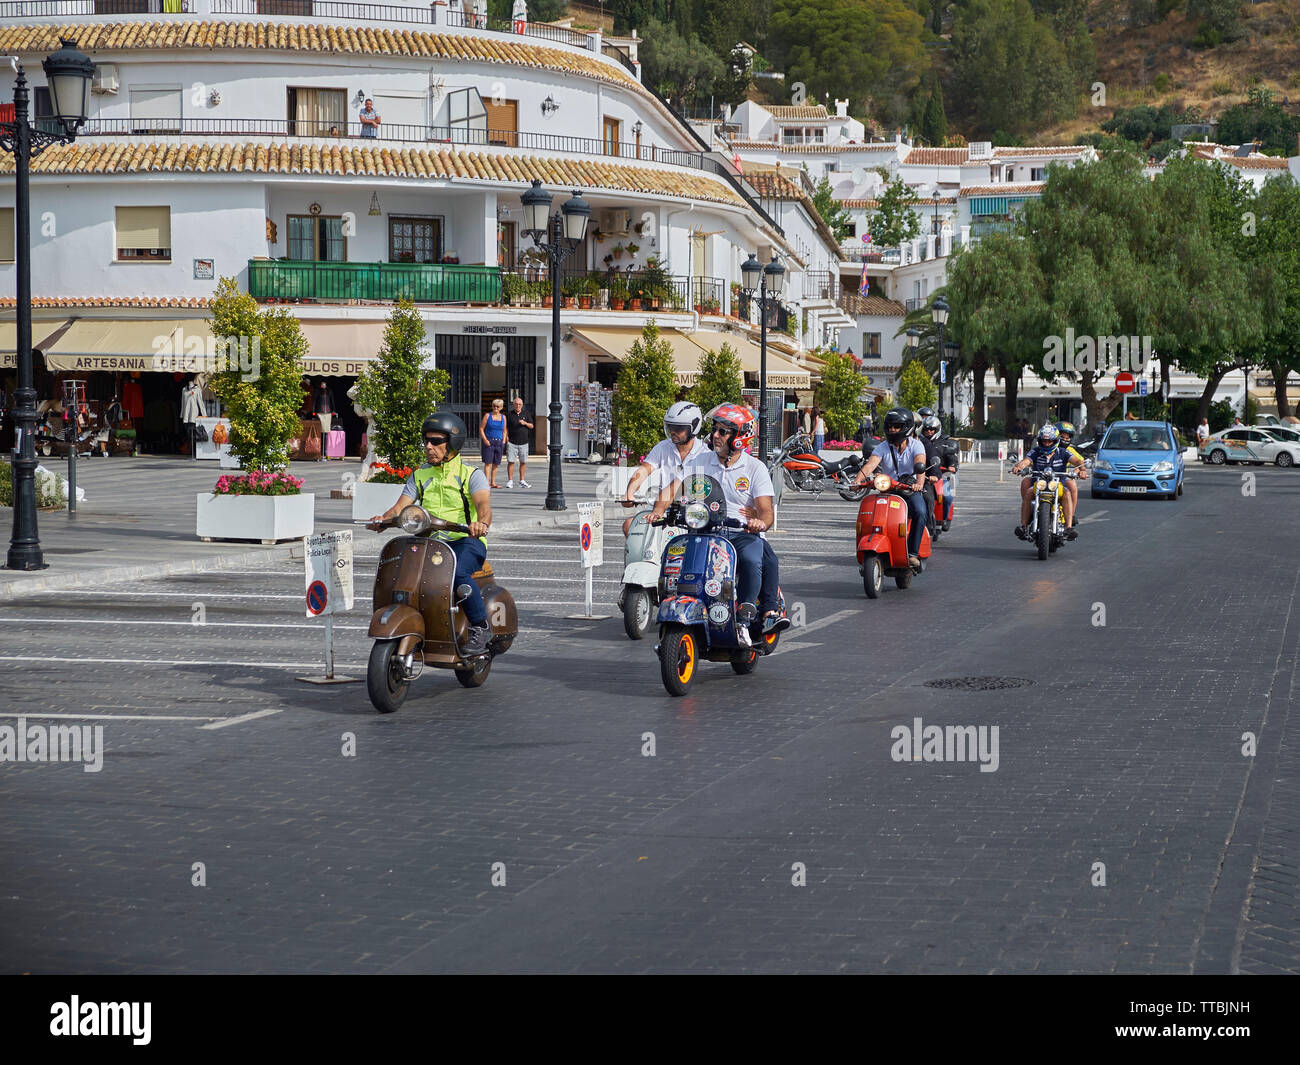 XII Concentración motos clásicas Villa de Mijas -classic motorcycle meeting in Mijas, Málaga province, Andalusia, Spain. Stock Photo